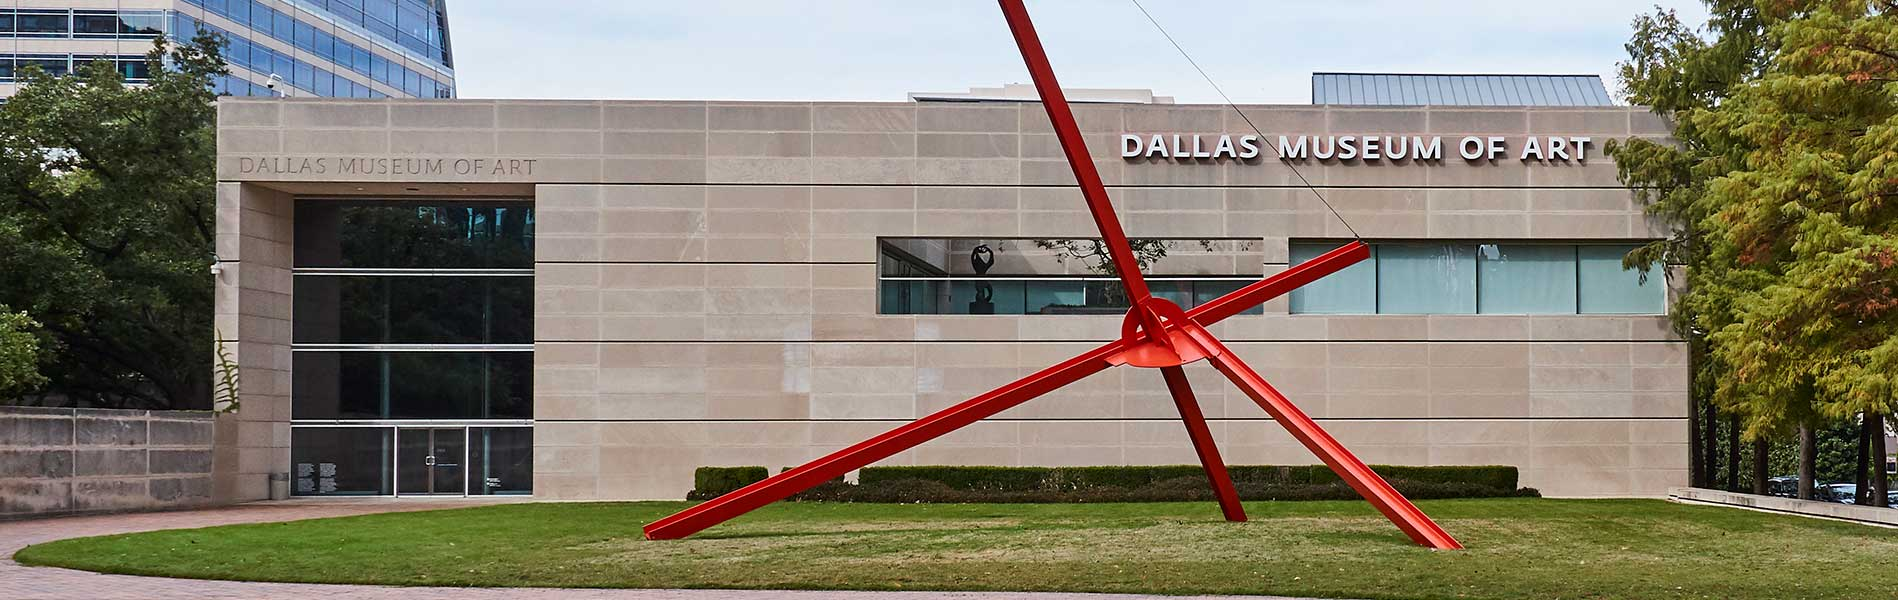 Exterior view of the Dallas Museum of Art, gray building